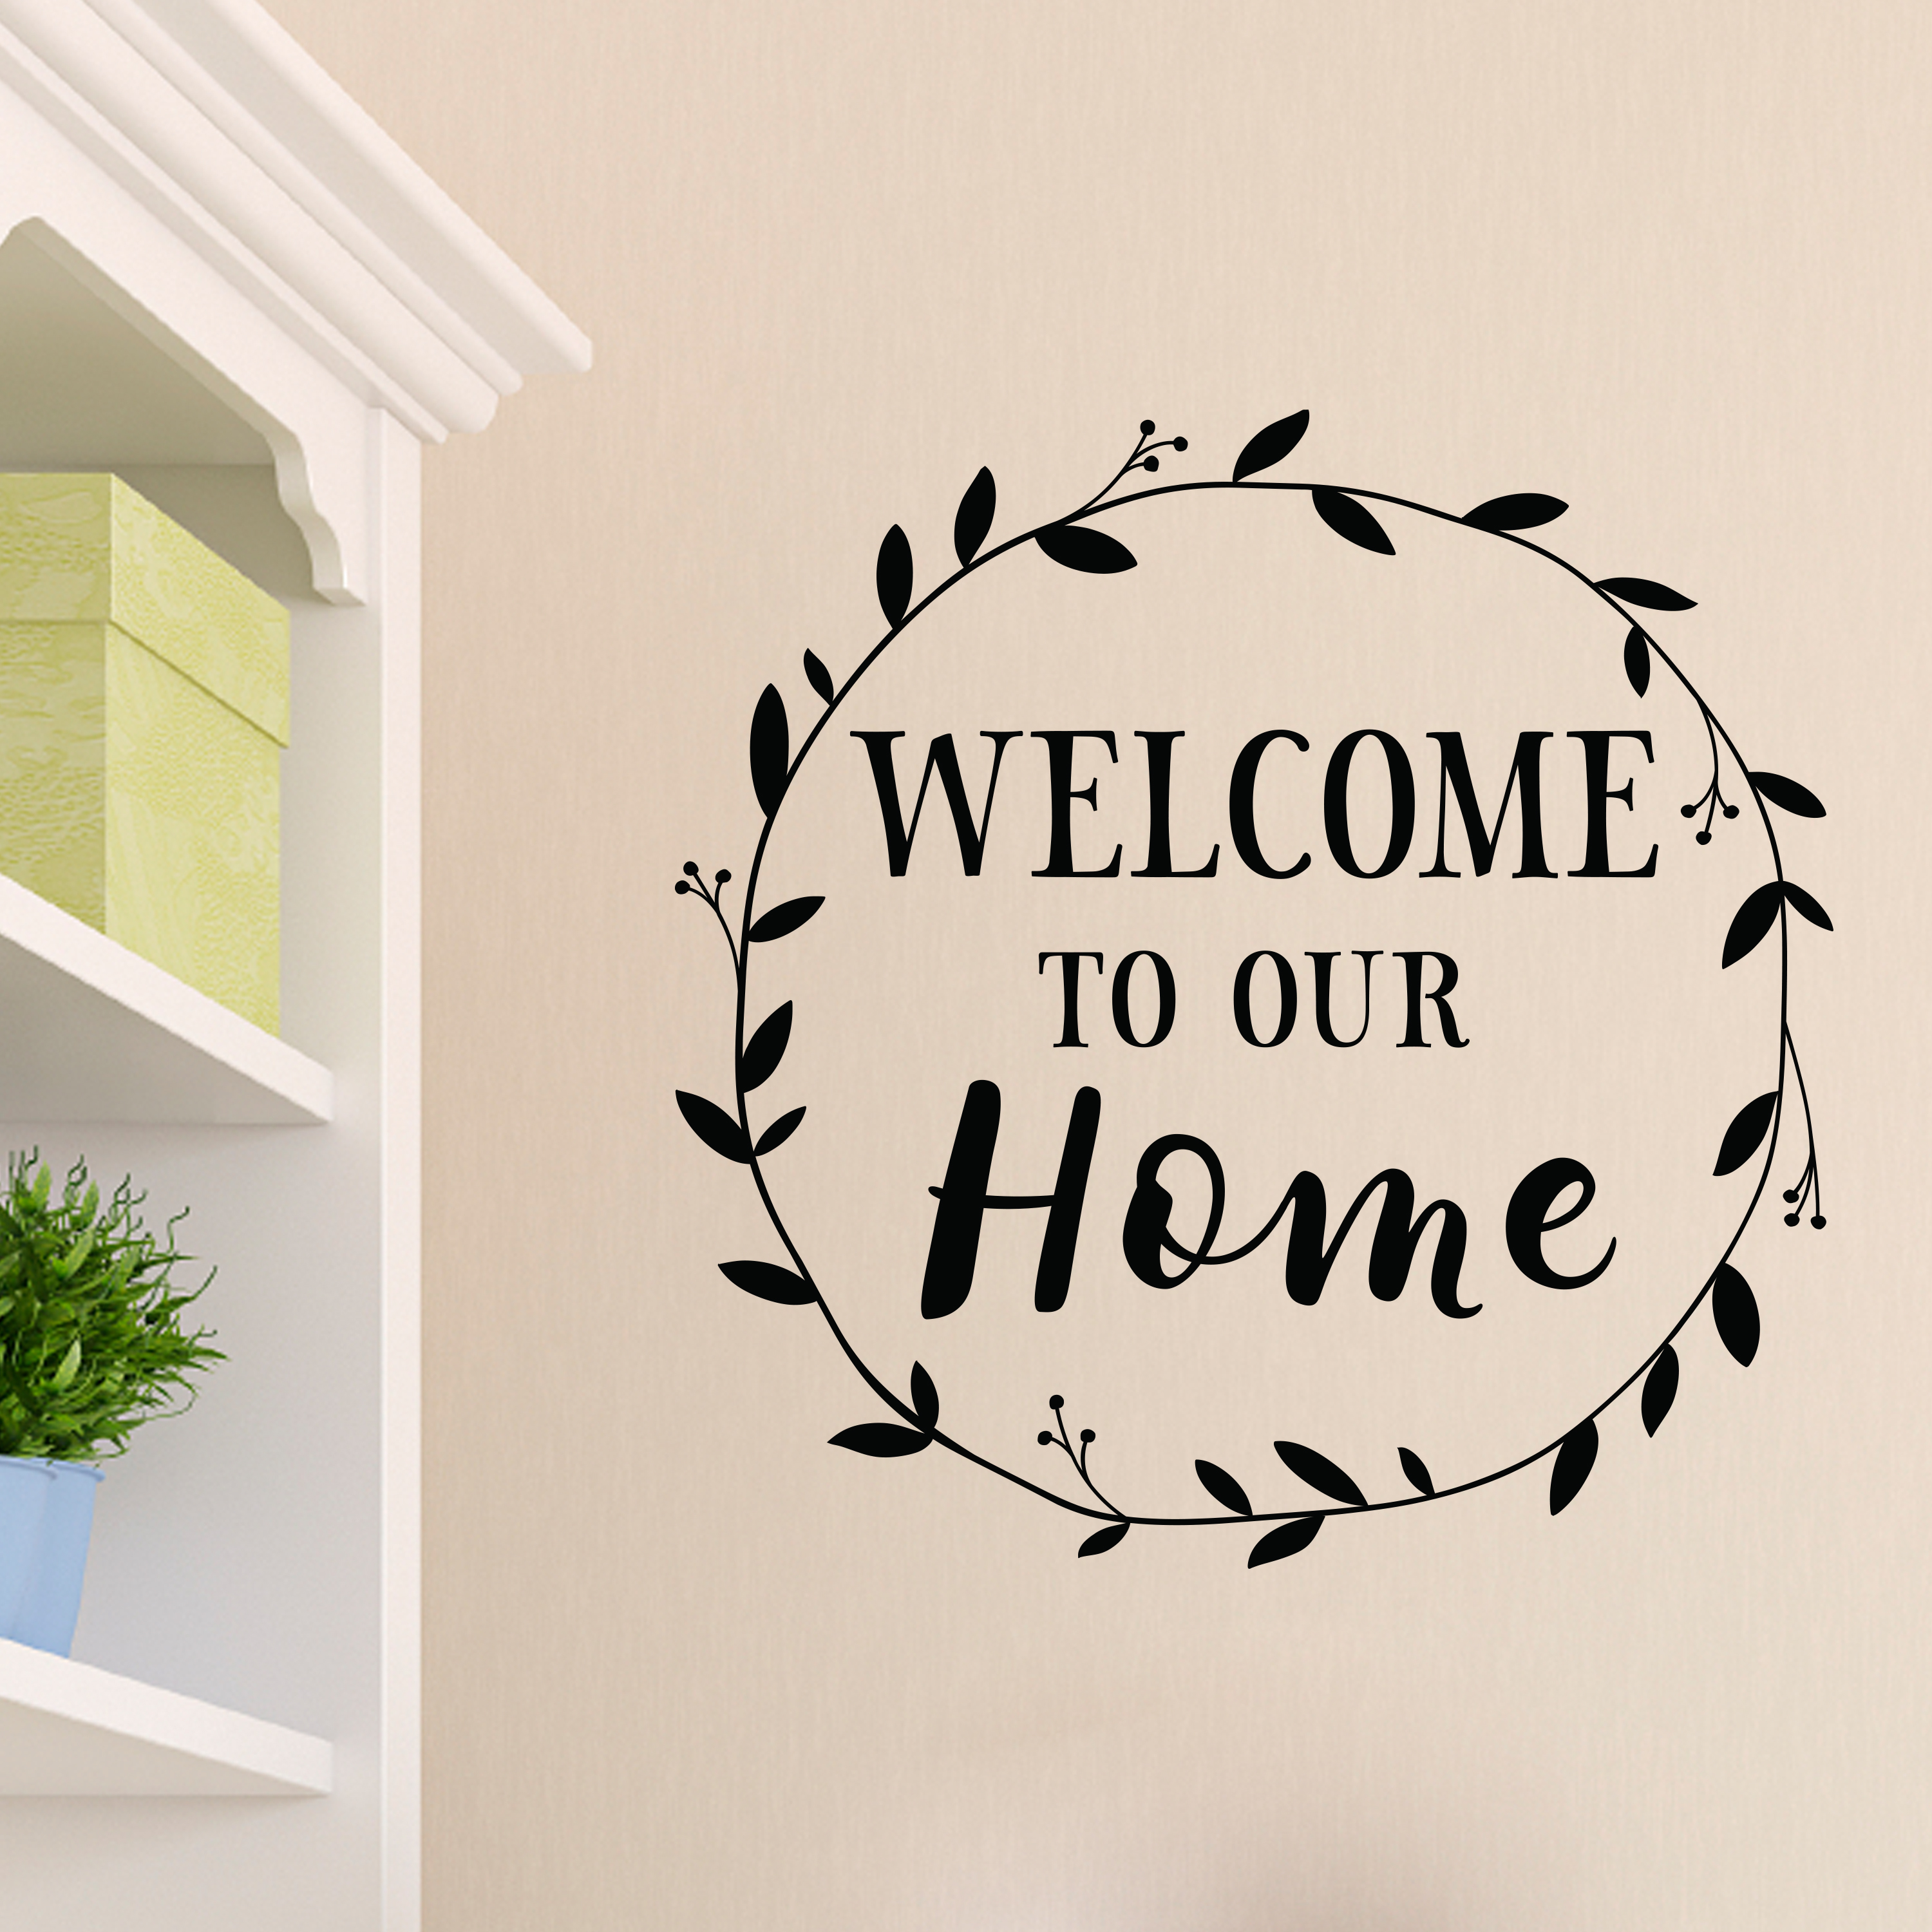 Welcome To Our Home: Welcome To Our Home Vinyl Wall Decal, Entry Wall Art